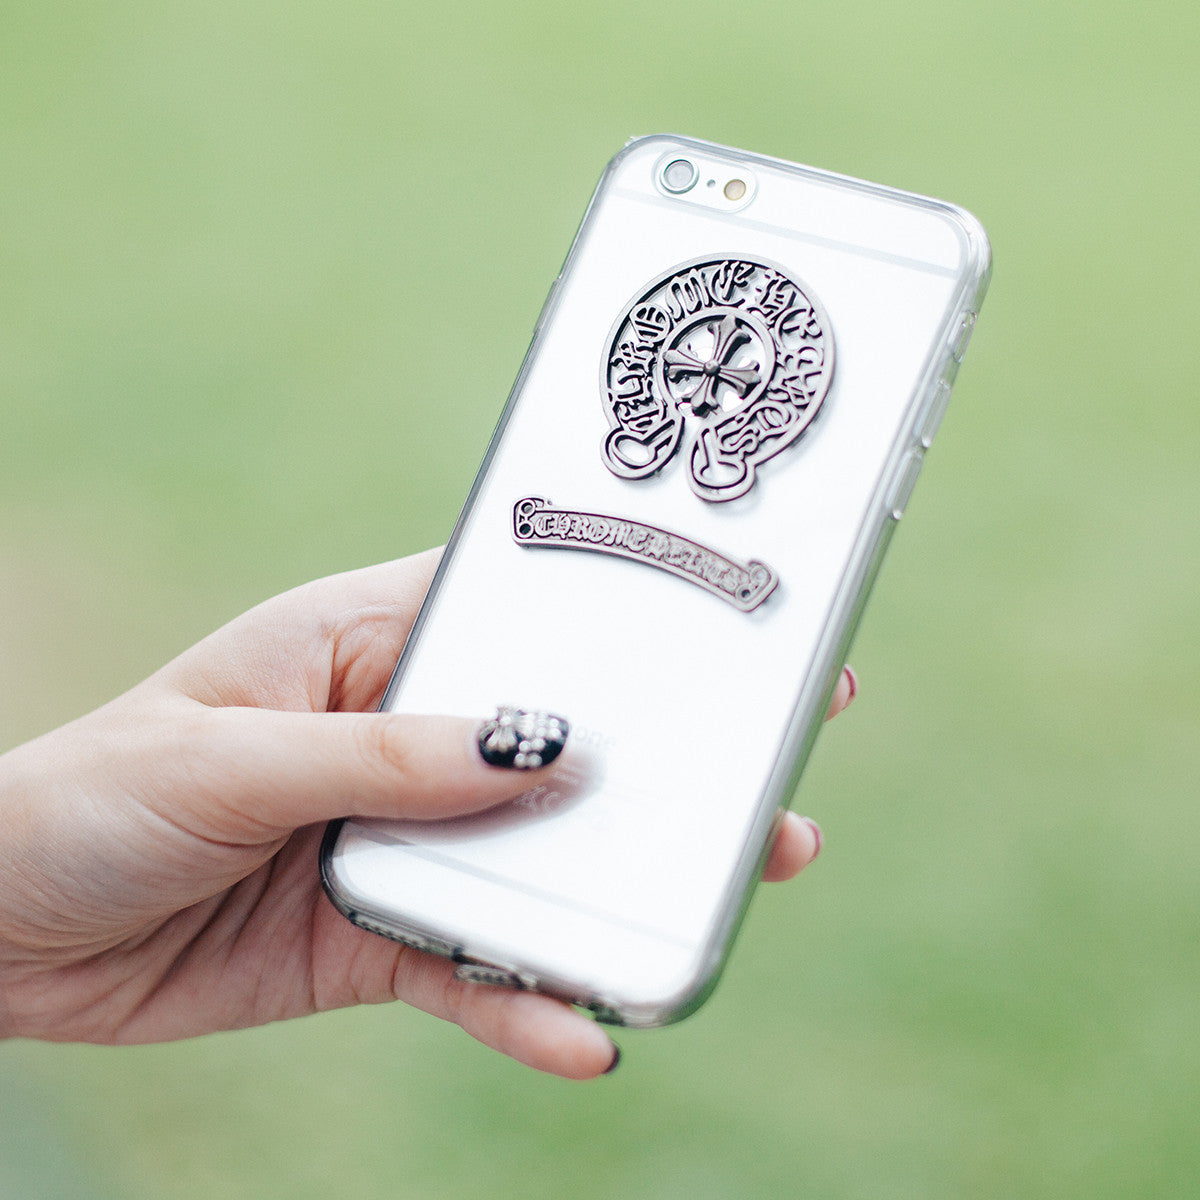 [Restocked] Chrome Hearts iPhone Case